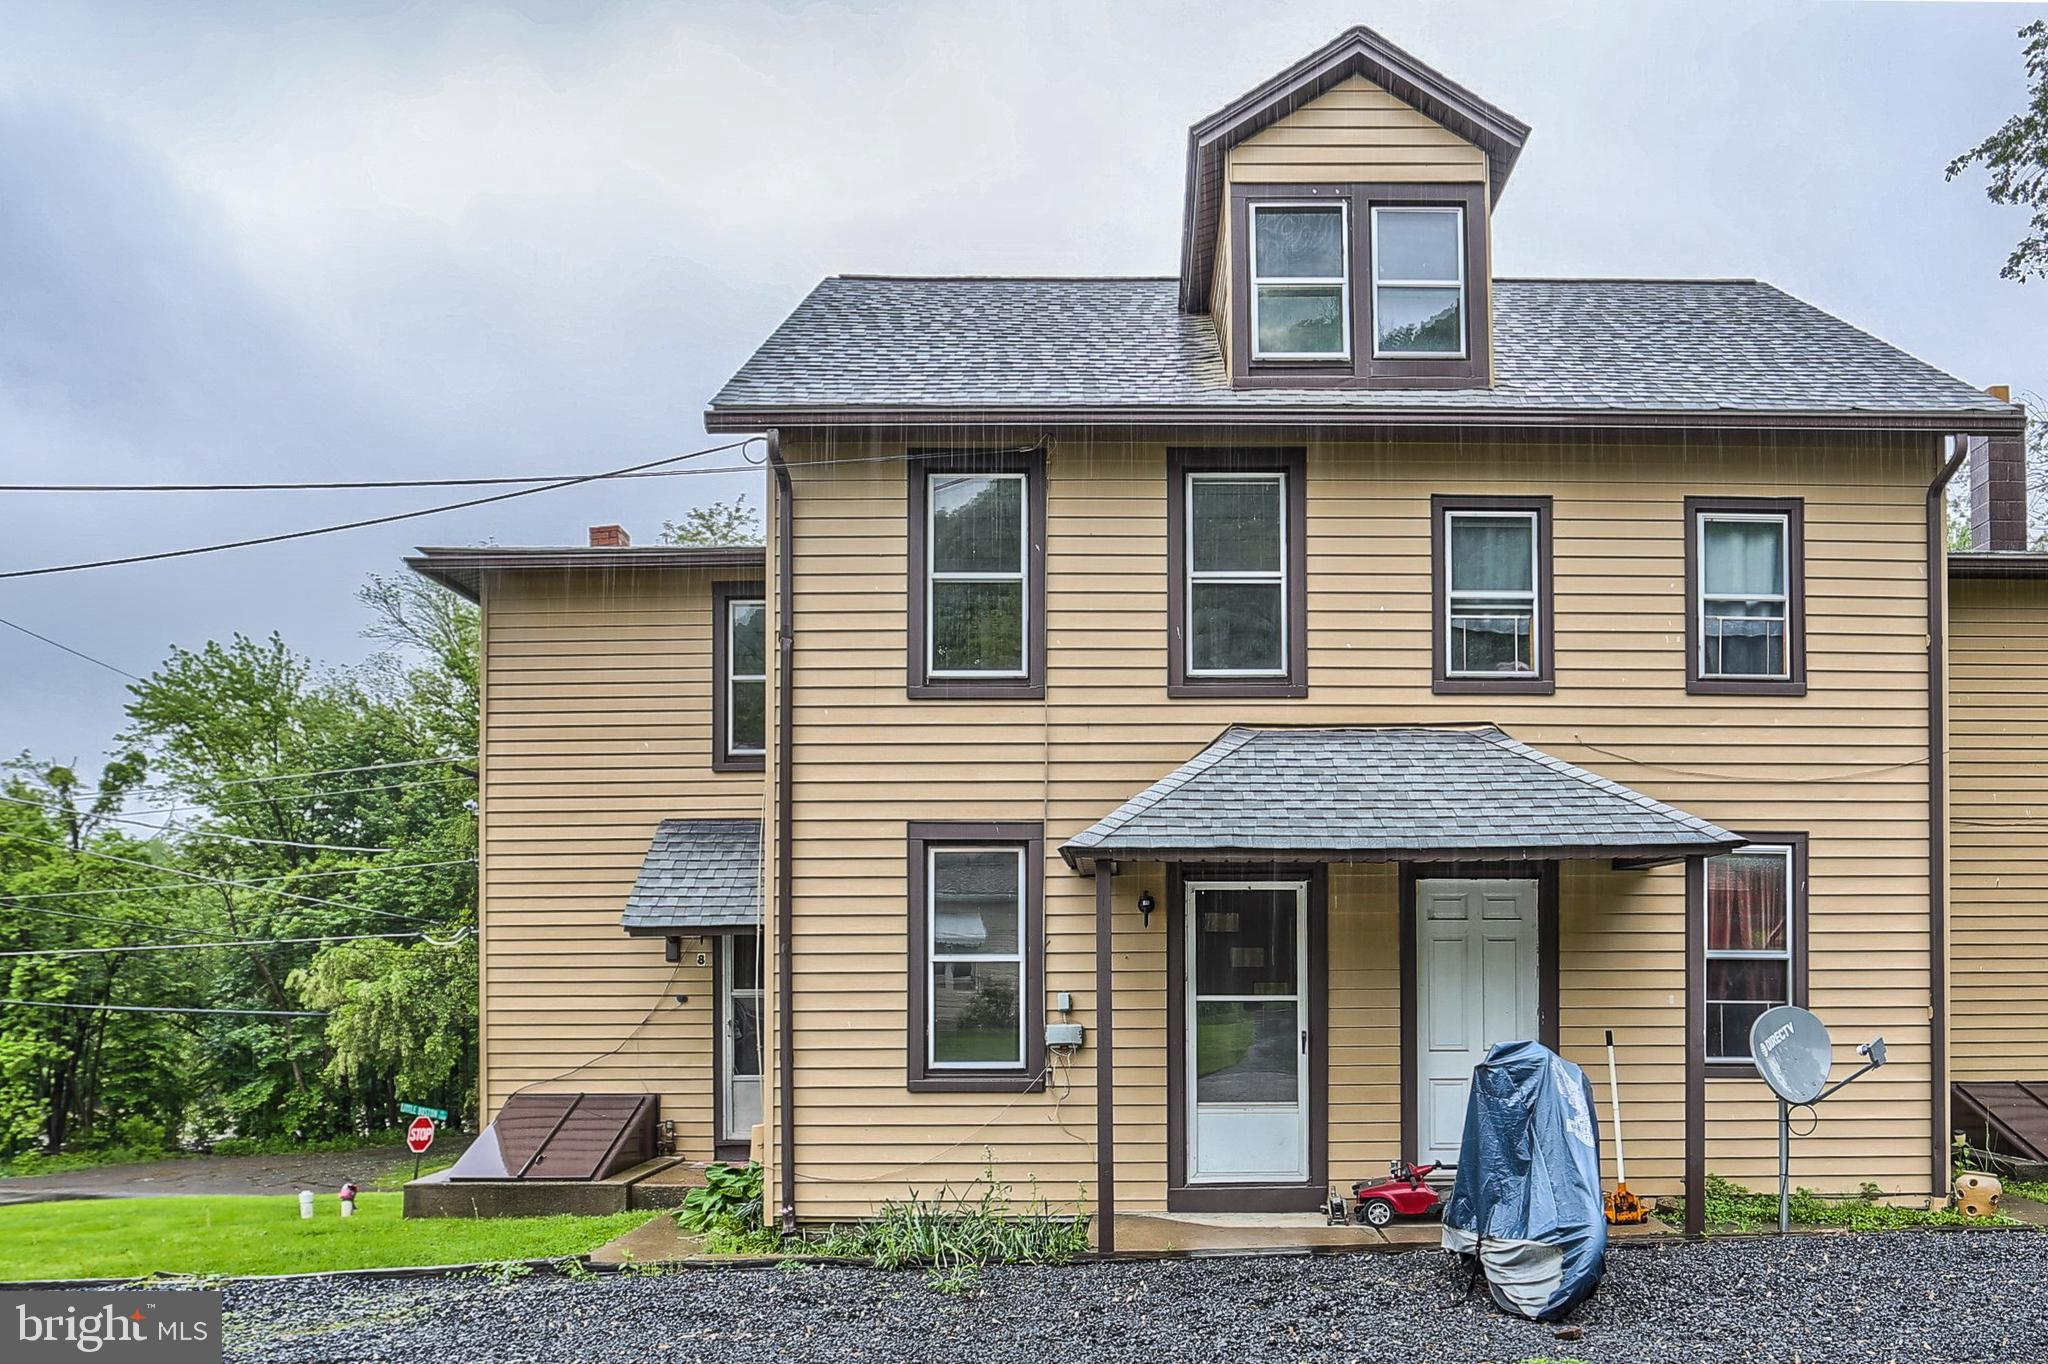 6-8 WATERSHED DRIVE, DUNCANNON, PA 17020